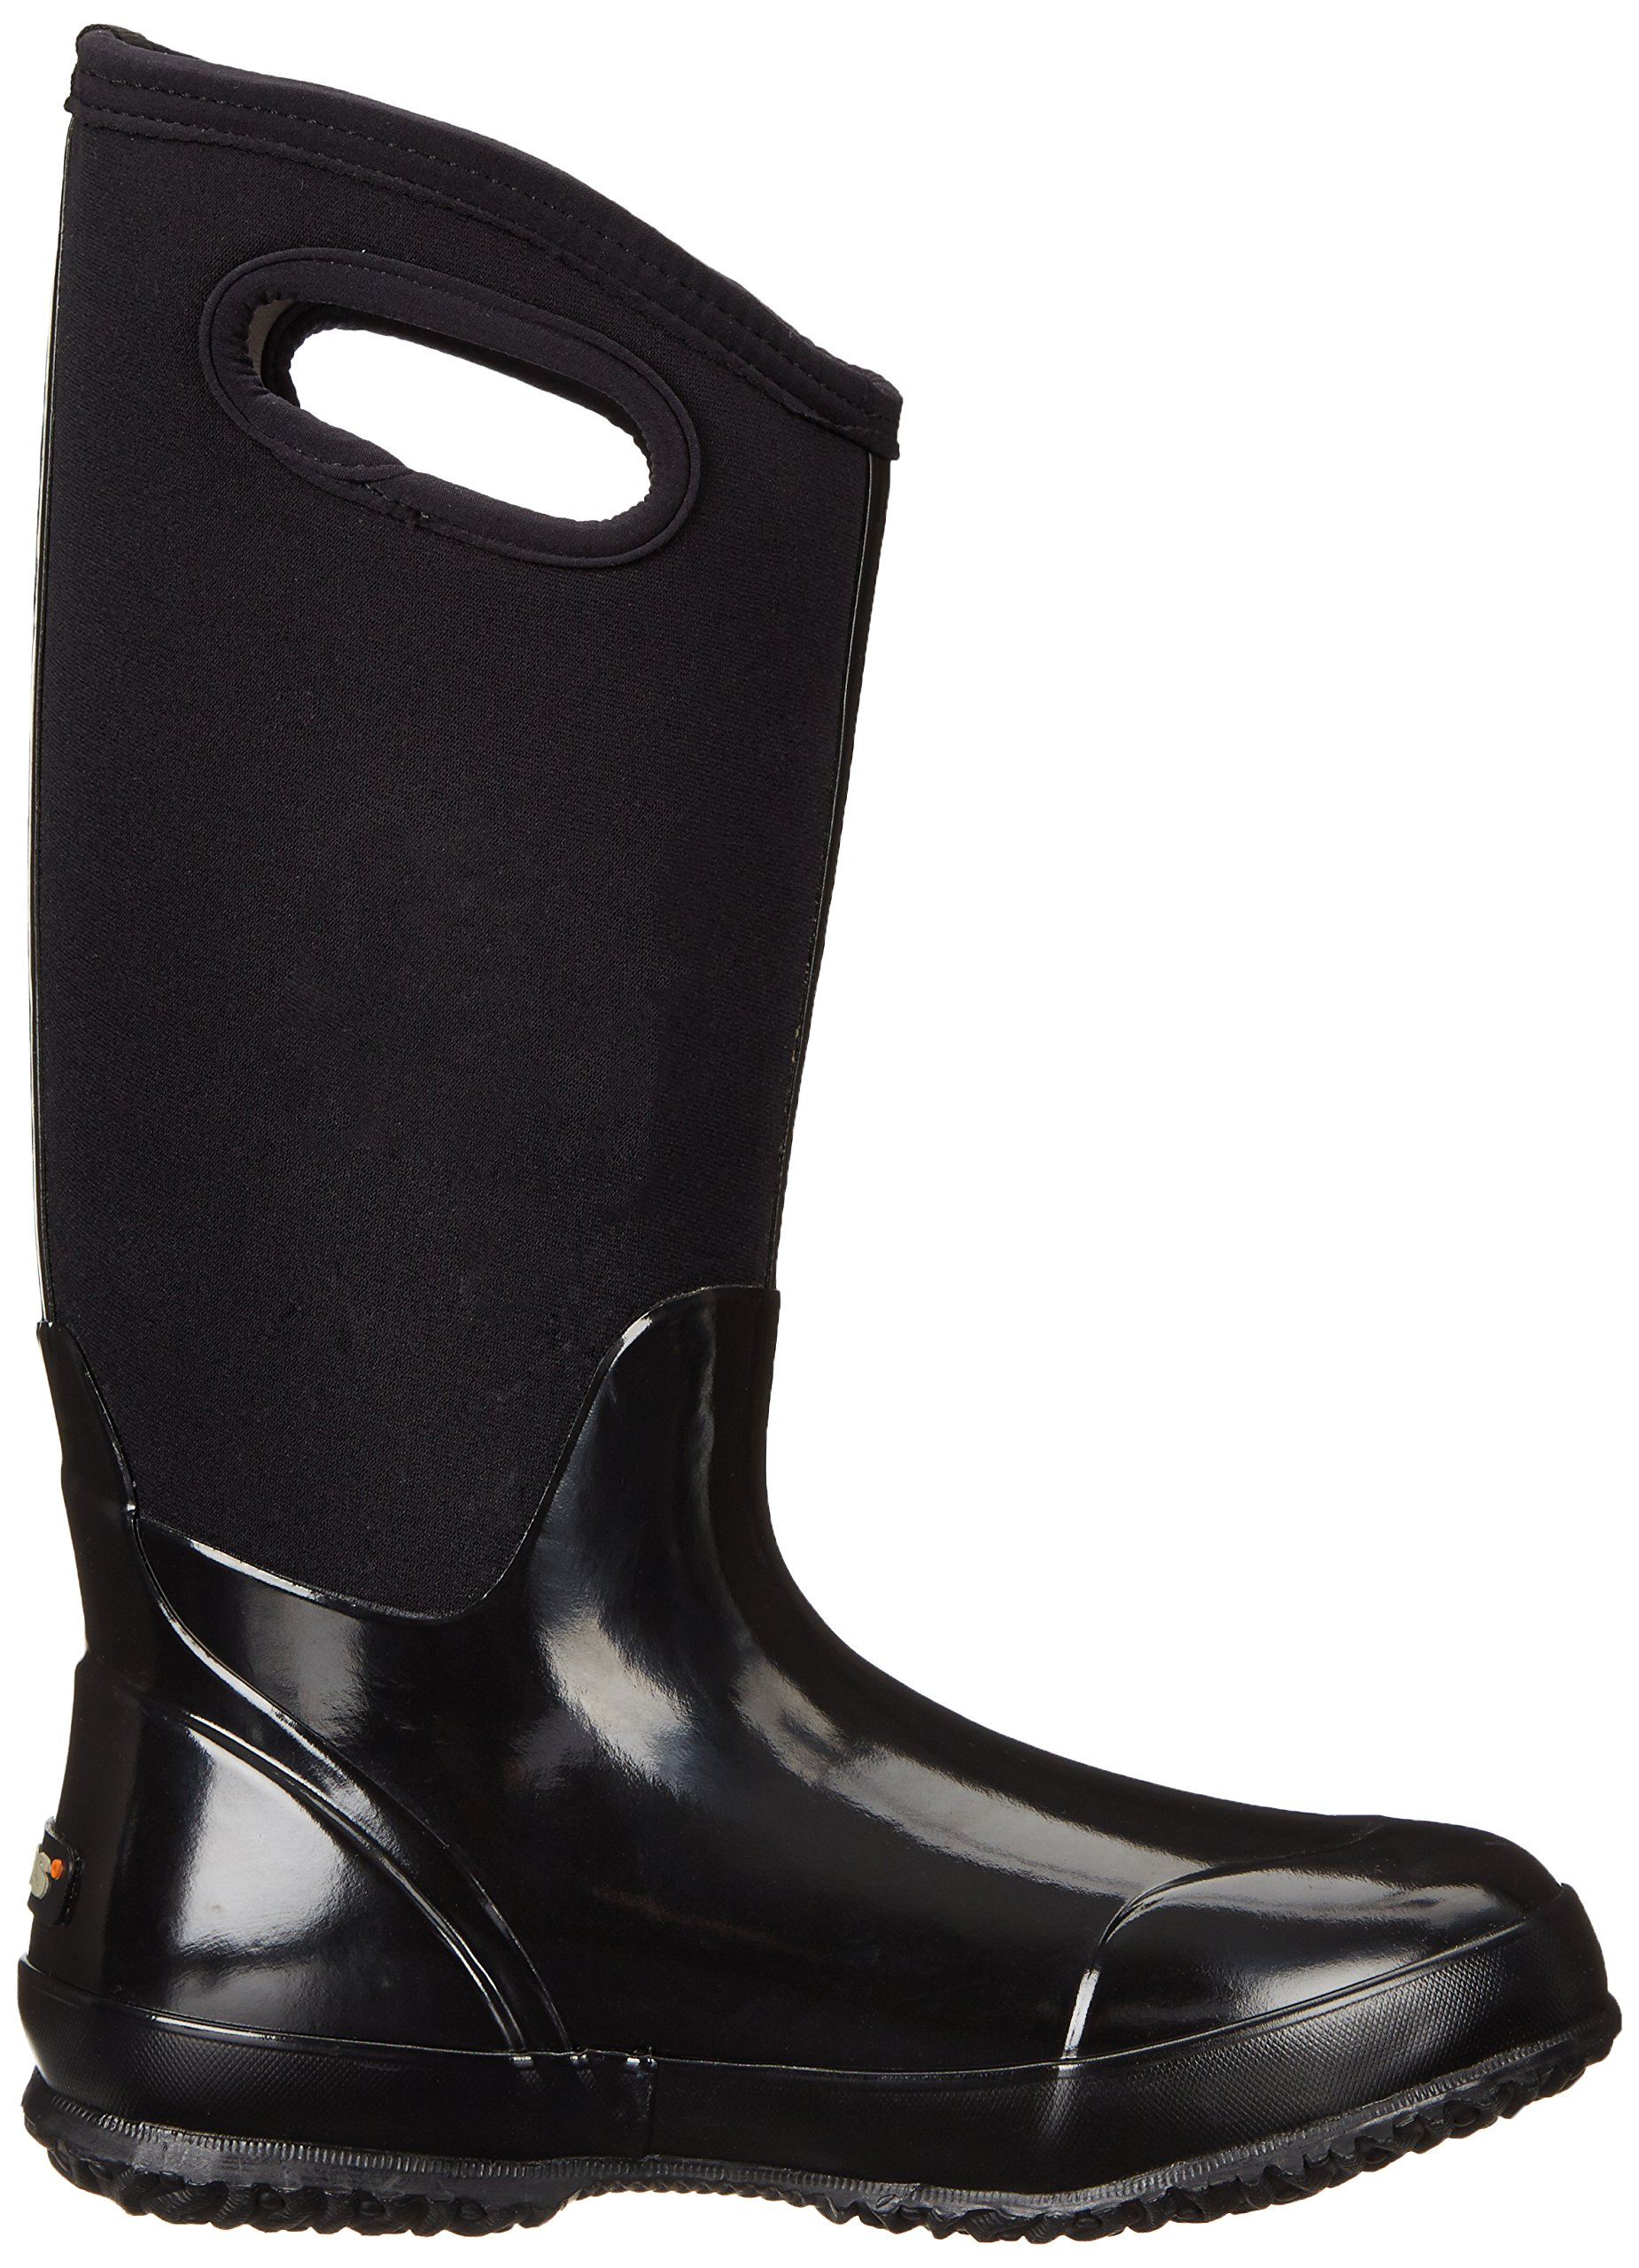 Bogs Women's Classic High Handle Waterproof Insulated Boot,Black Smooth,7 M US by Bogs (Image #6)